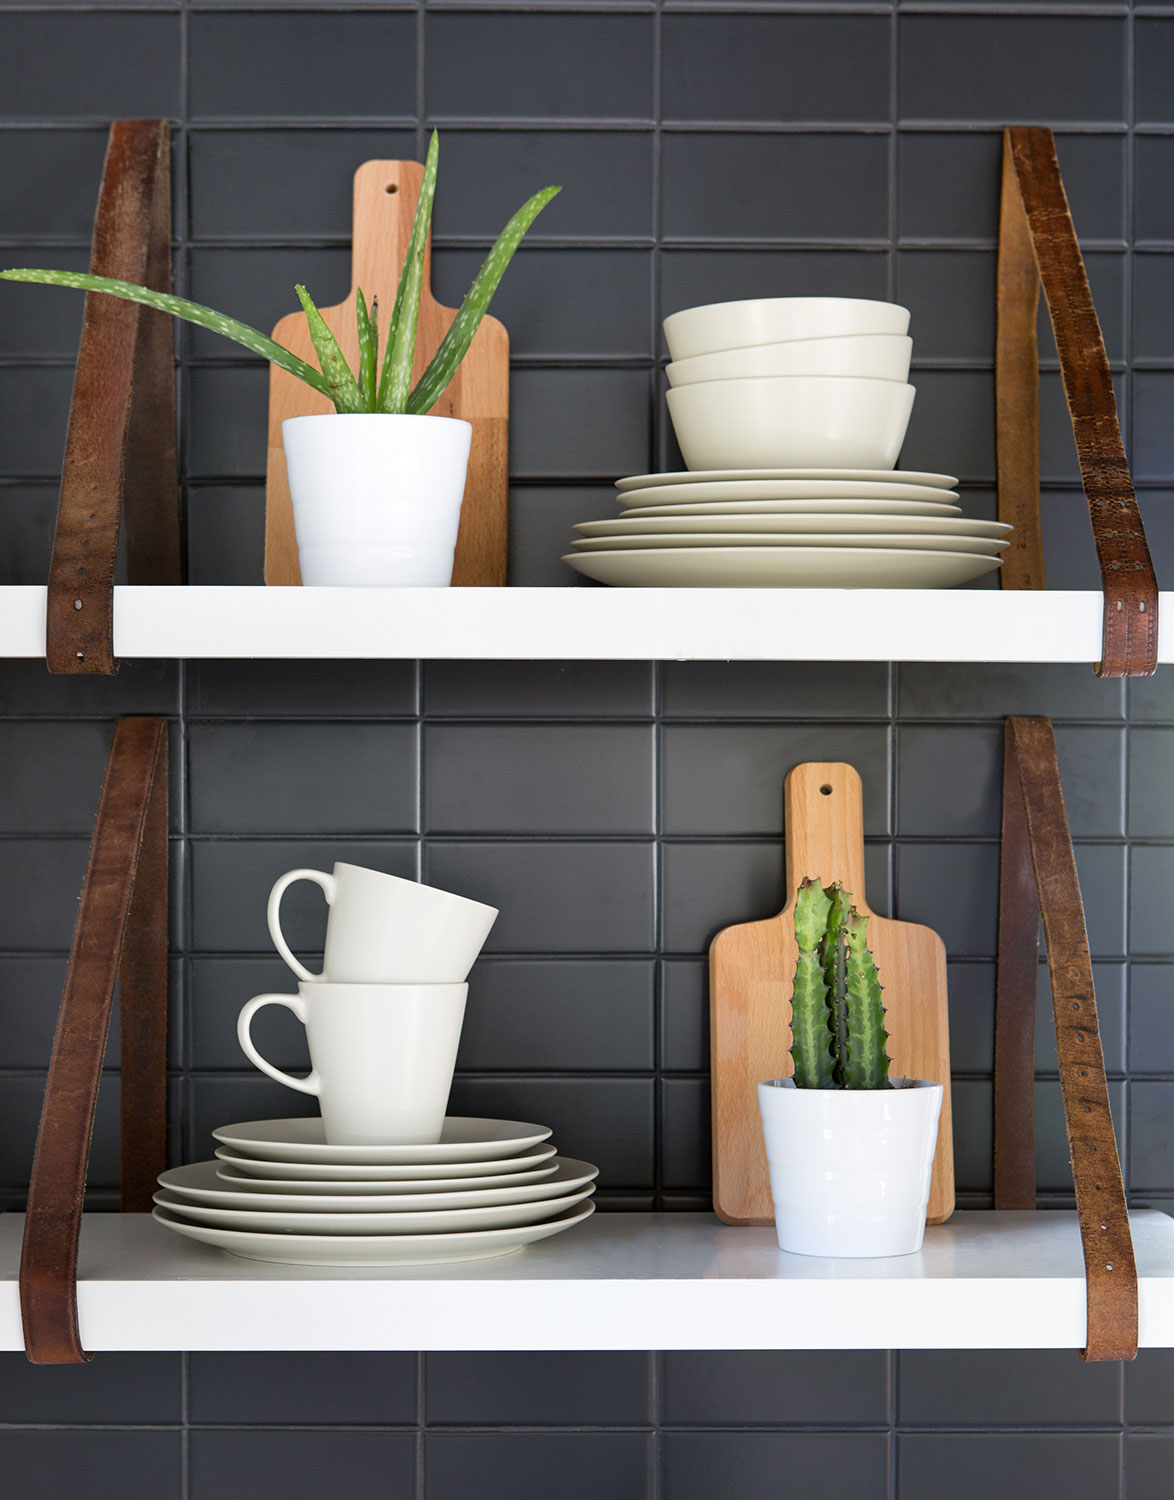 I used vintage leather belts found on South Congress Ave to hold up the shelves in the kitchen!